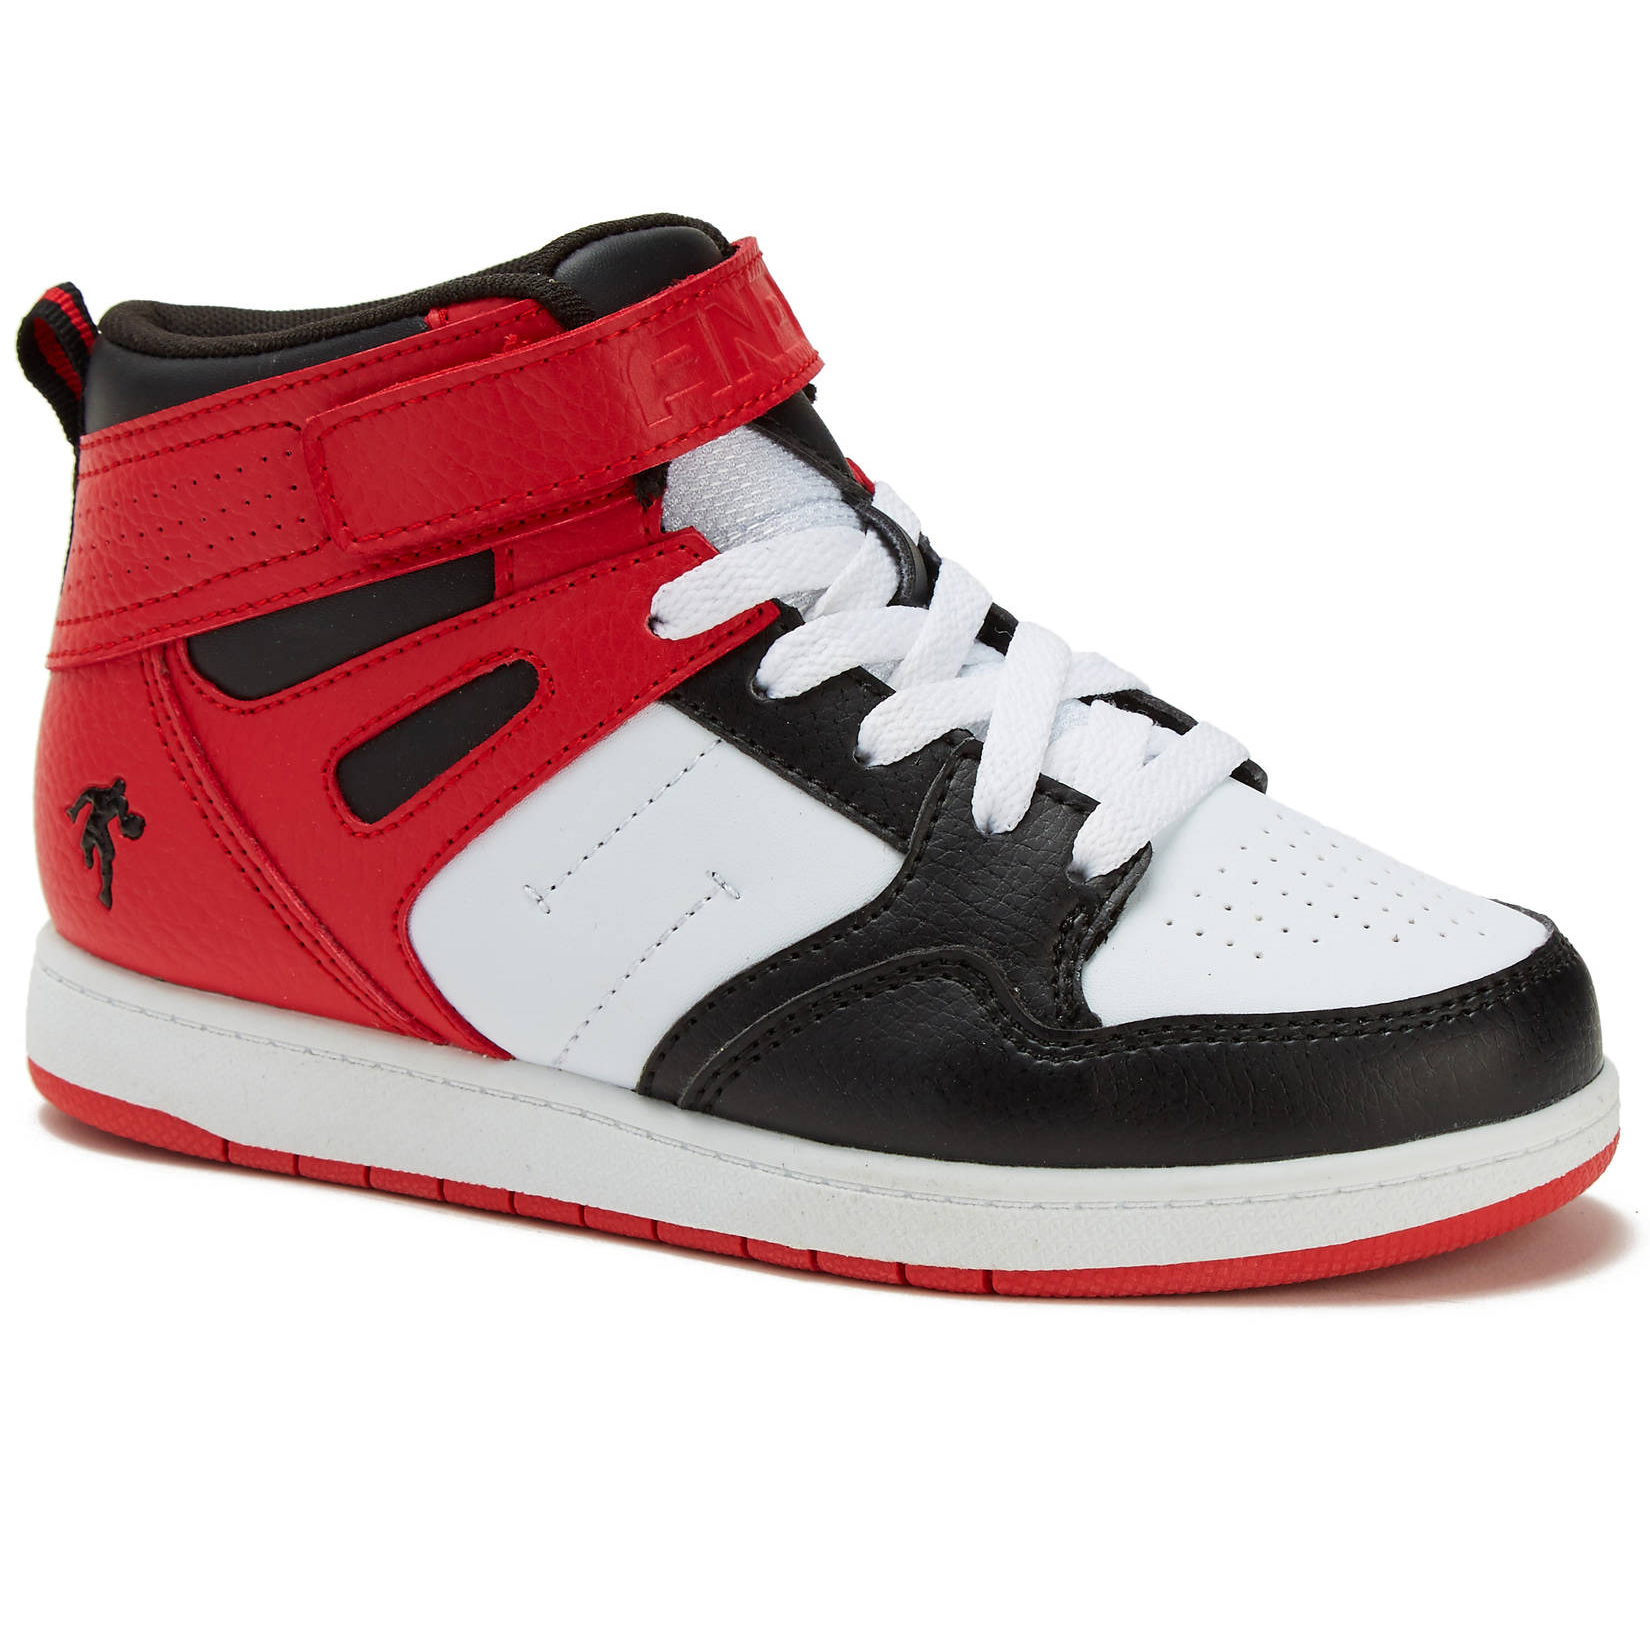 Image of And1 Boys' Zenith Athletic Shoe